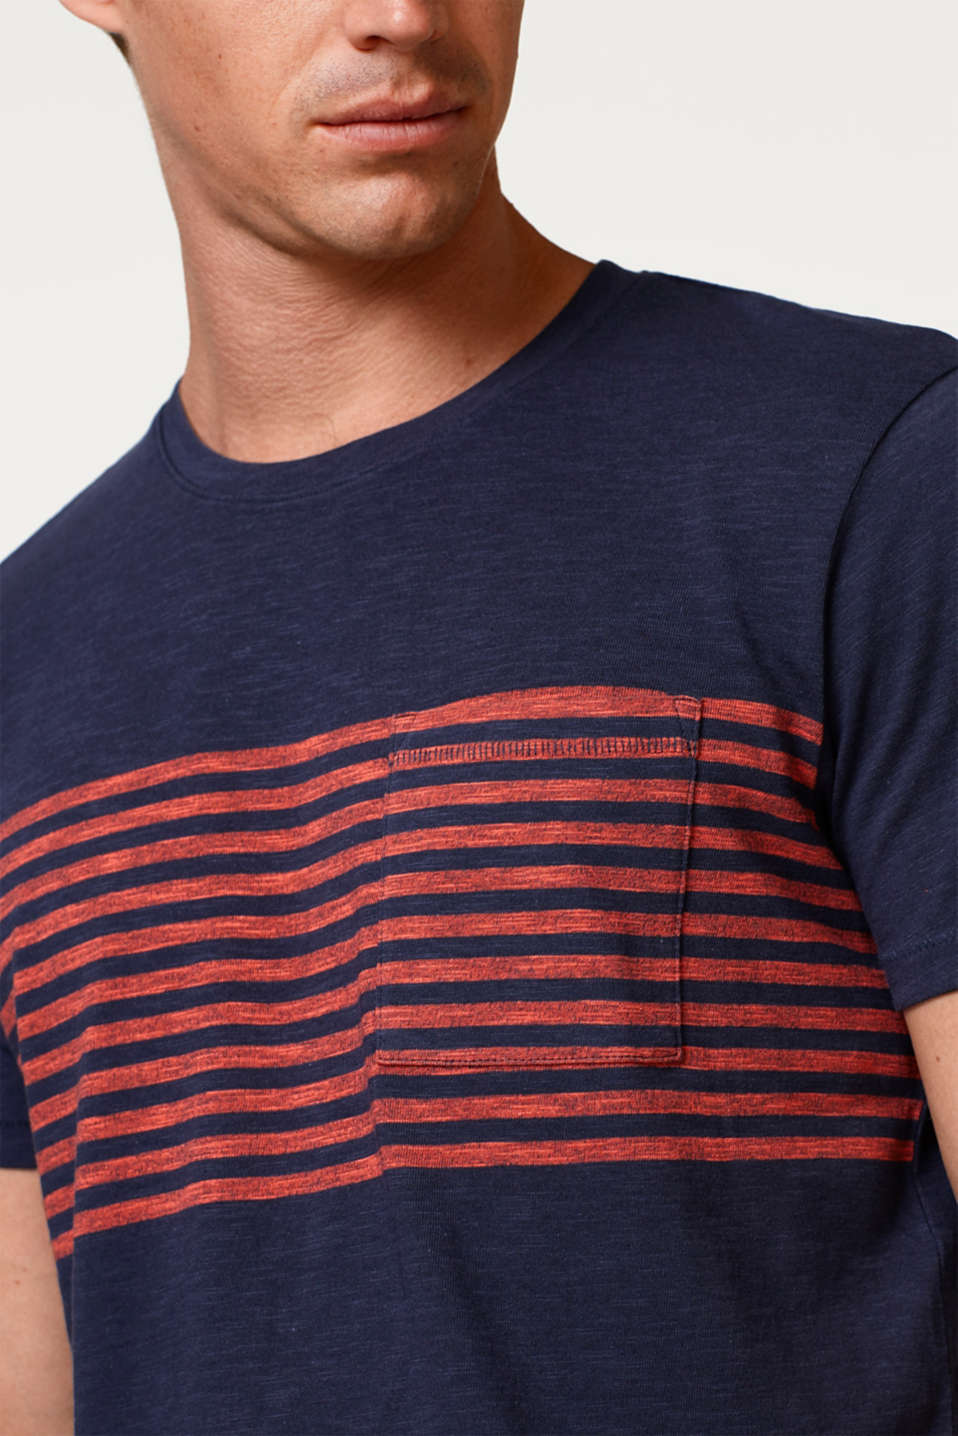 Slub jersey T-shirt with stripes, 100% cotton